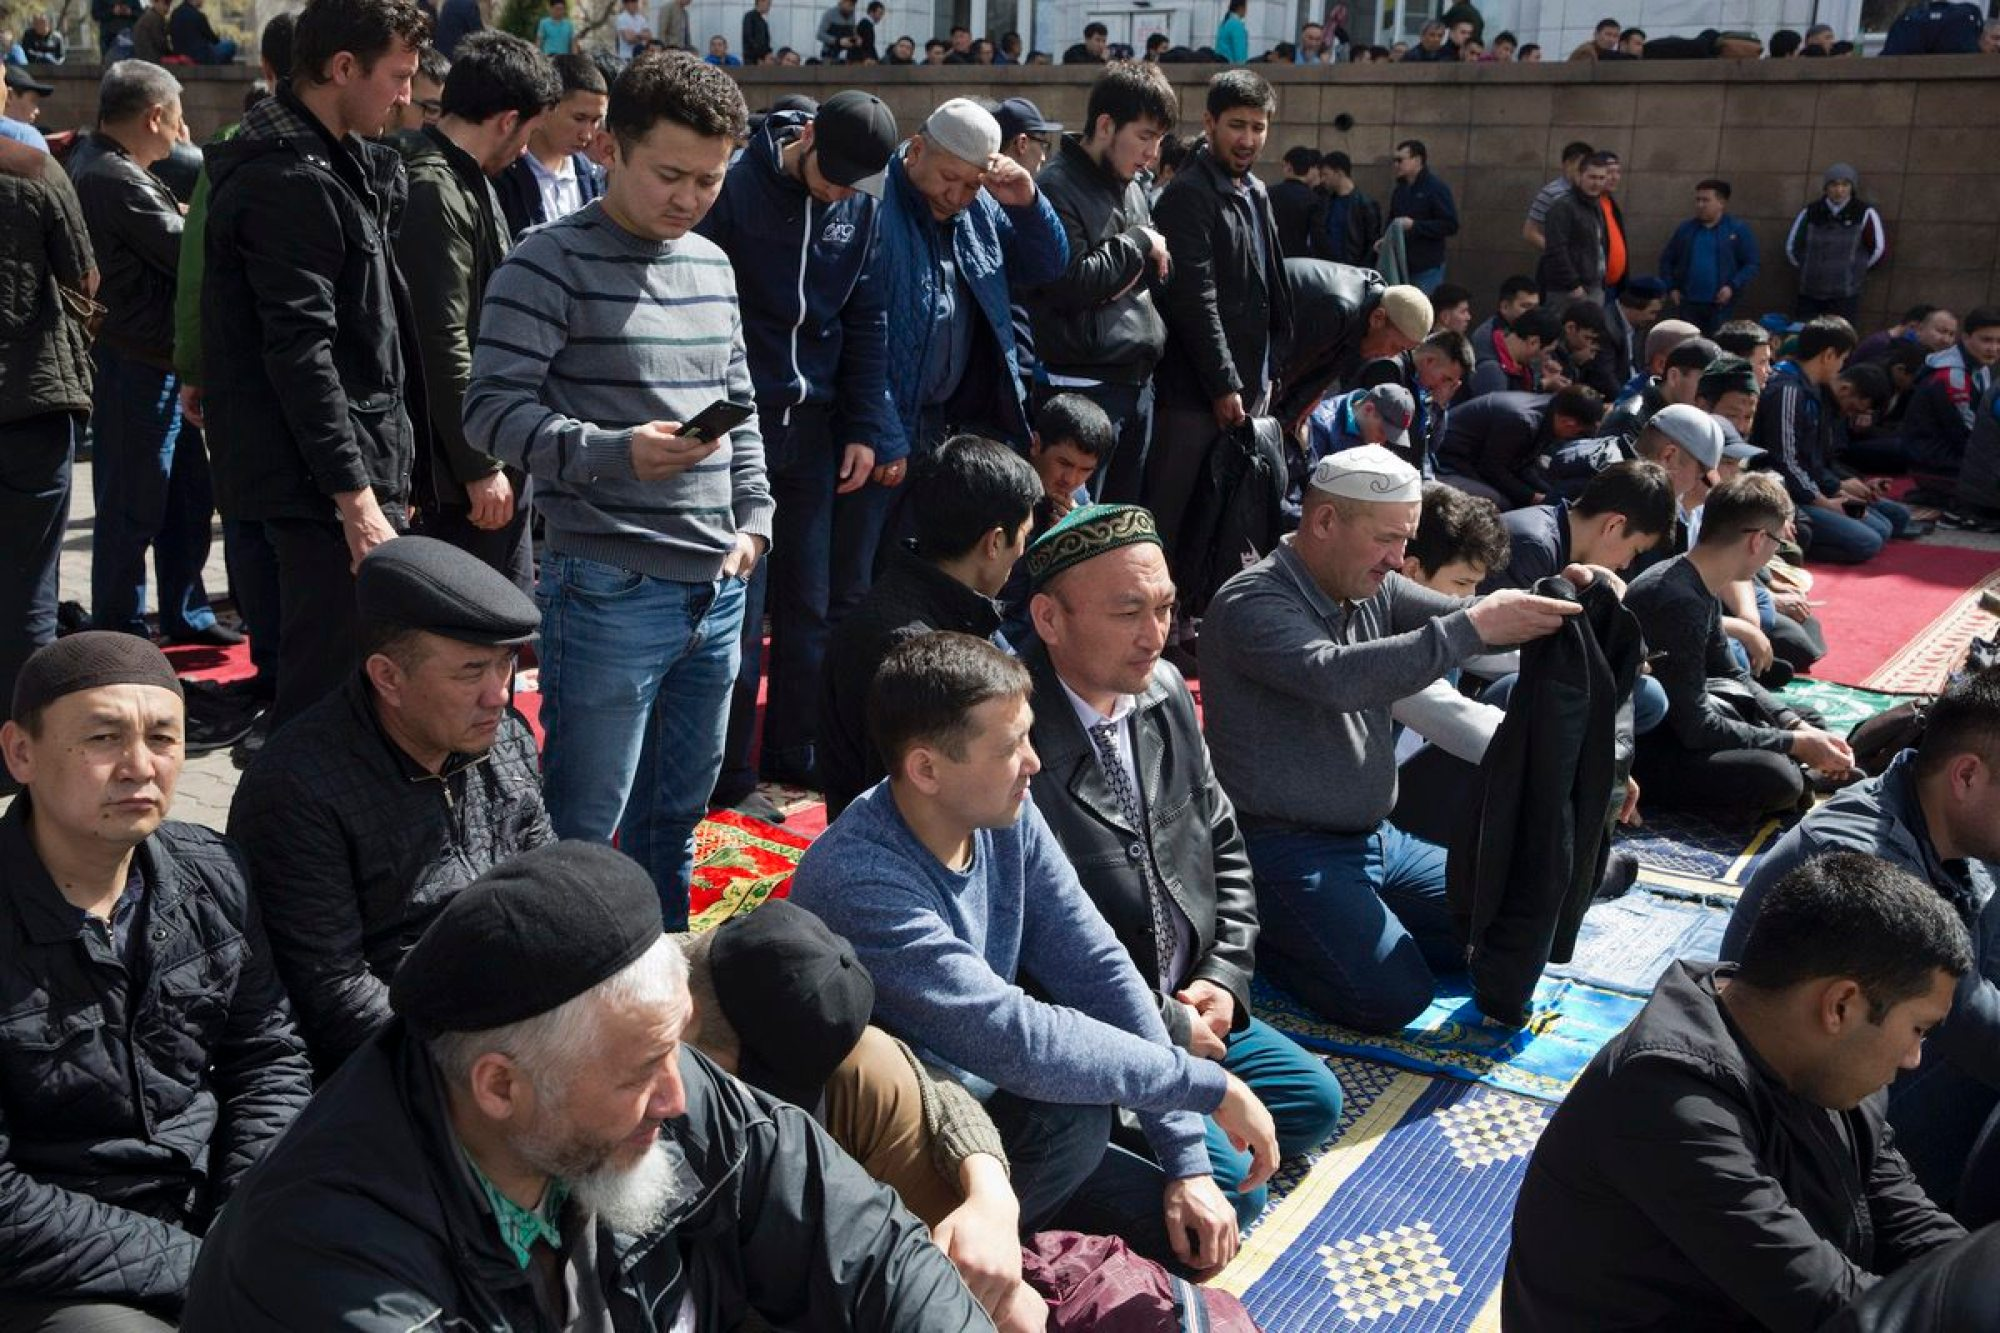 In this photo taken Friday, March 30, 2018, Omir Bekalic, center prepares to pray at a mosque in Almaty, Kazakhstan. Since 2016, Chinese authorities in the heavily Muslim region of Xinjiang have carried out a campaign of mass detentions and indoctrination in internment camps with the stated aim of bolstering national security and eliminating Islamic extremism. The program appears to be an attempt to rewire its detainees' political thinking, erase their Islamic beliefs and reshape their very identities. (AP Photo/Ng Han Guan)